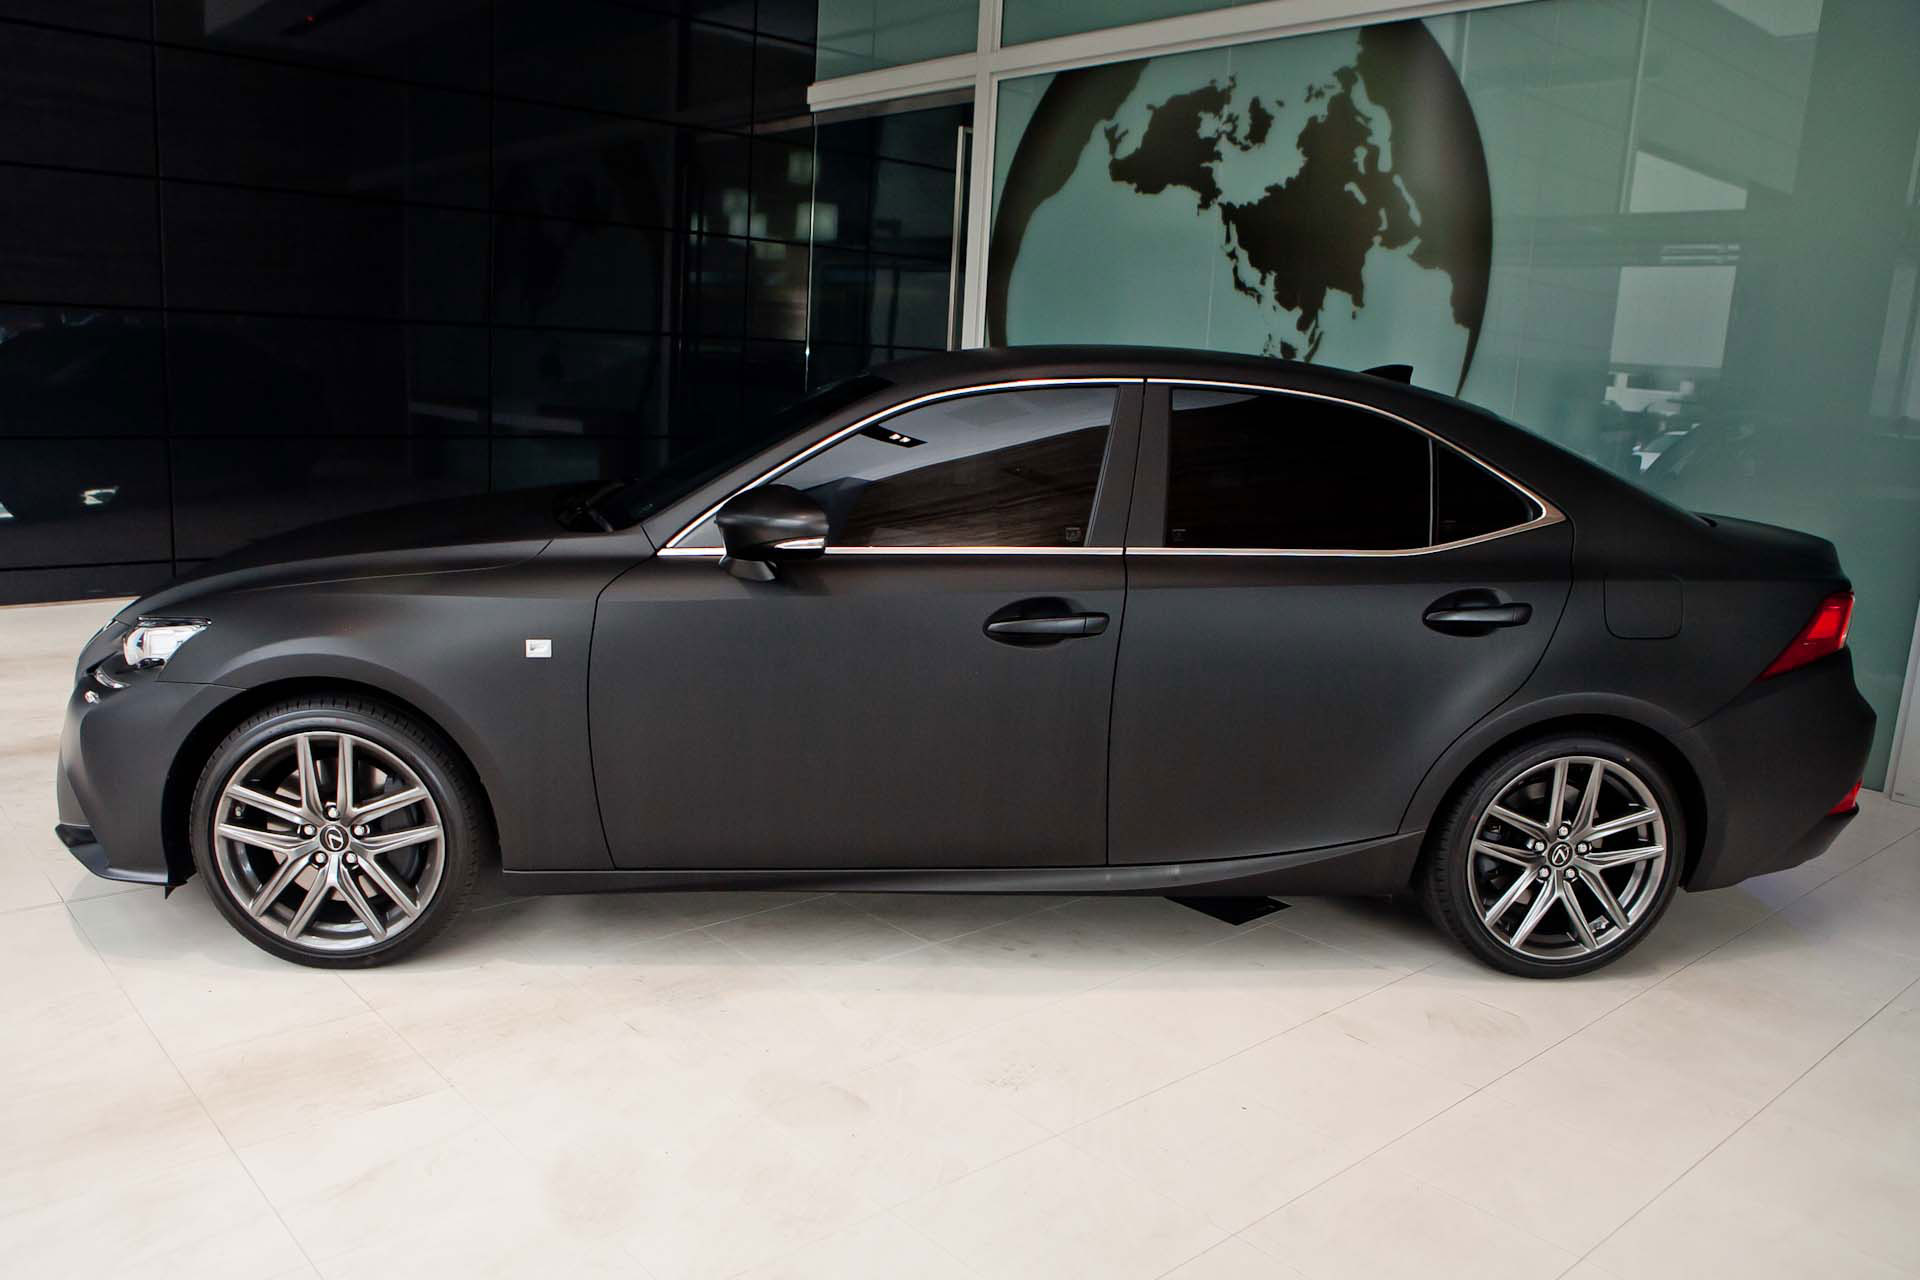 2014 Lexus IS Launched With Matte Black Wrap In Australia